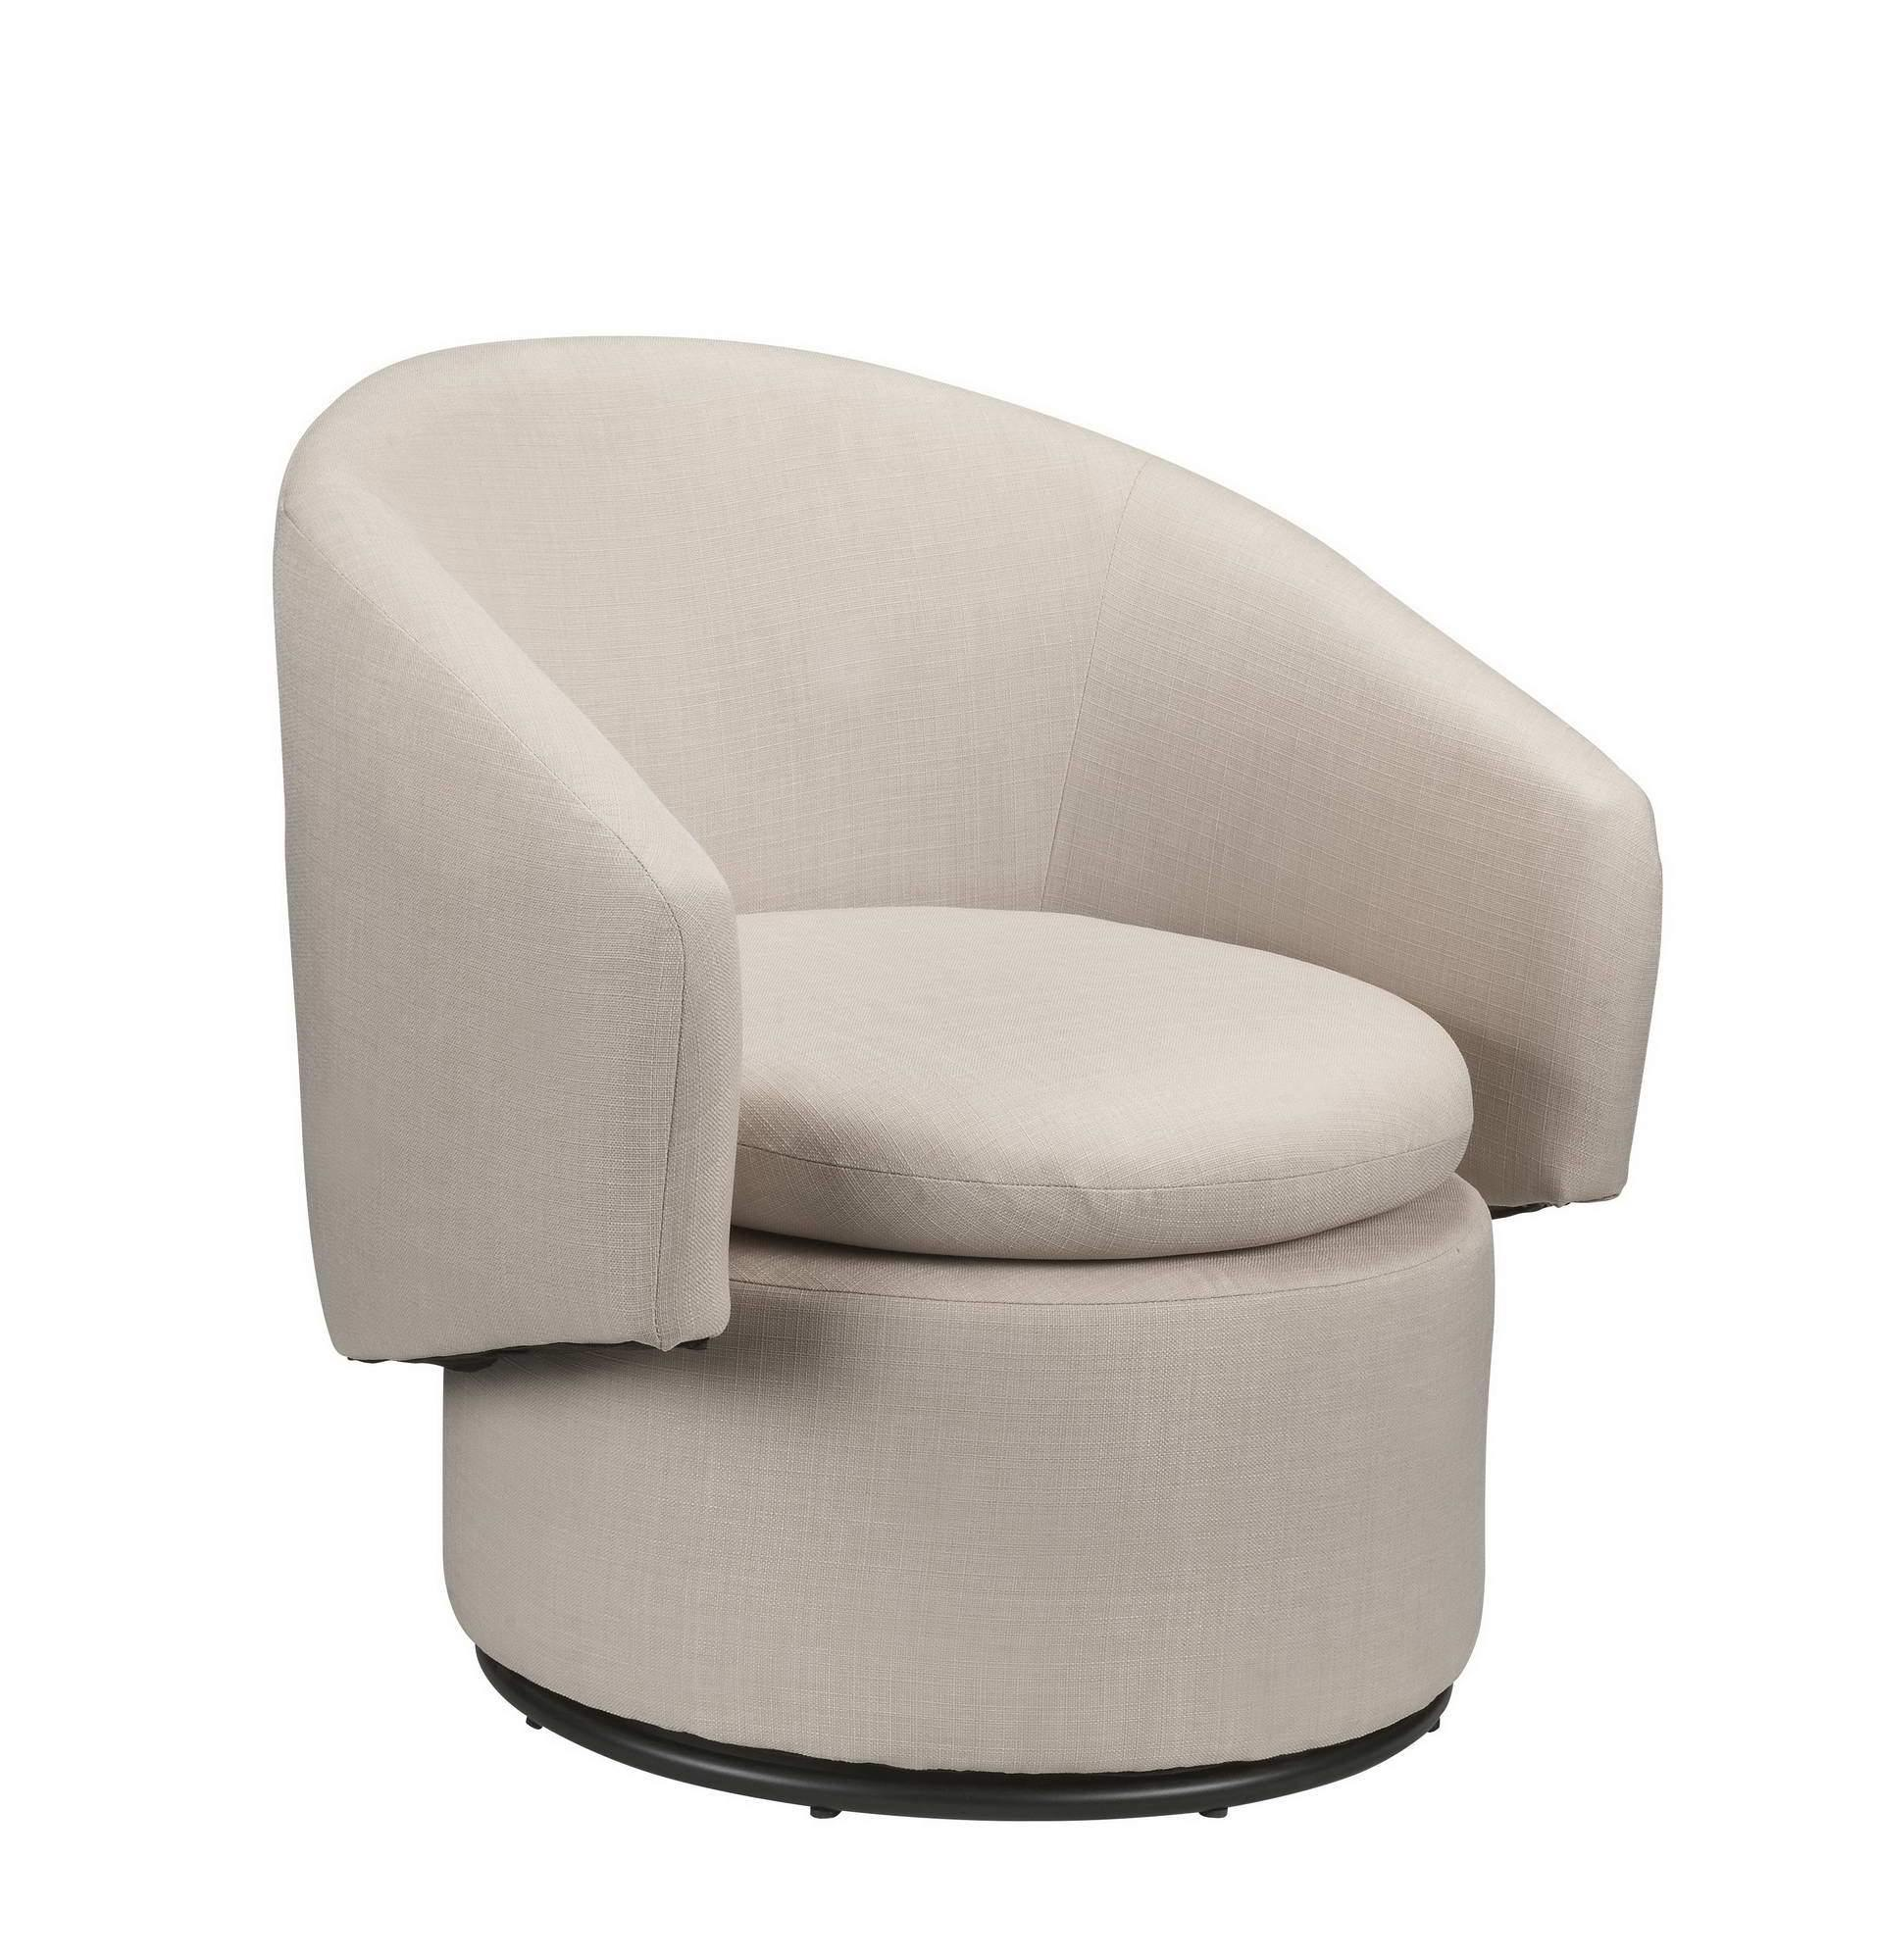 Barrel Accent Swivel Chair, Sand Linen, Contemporary